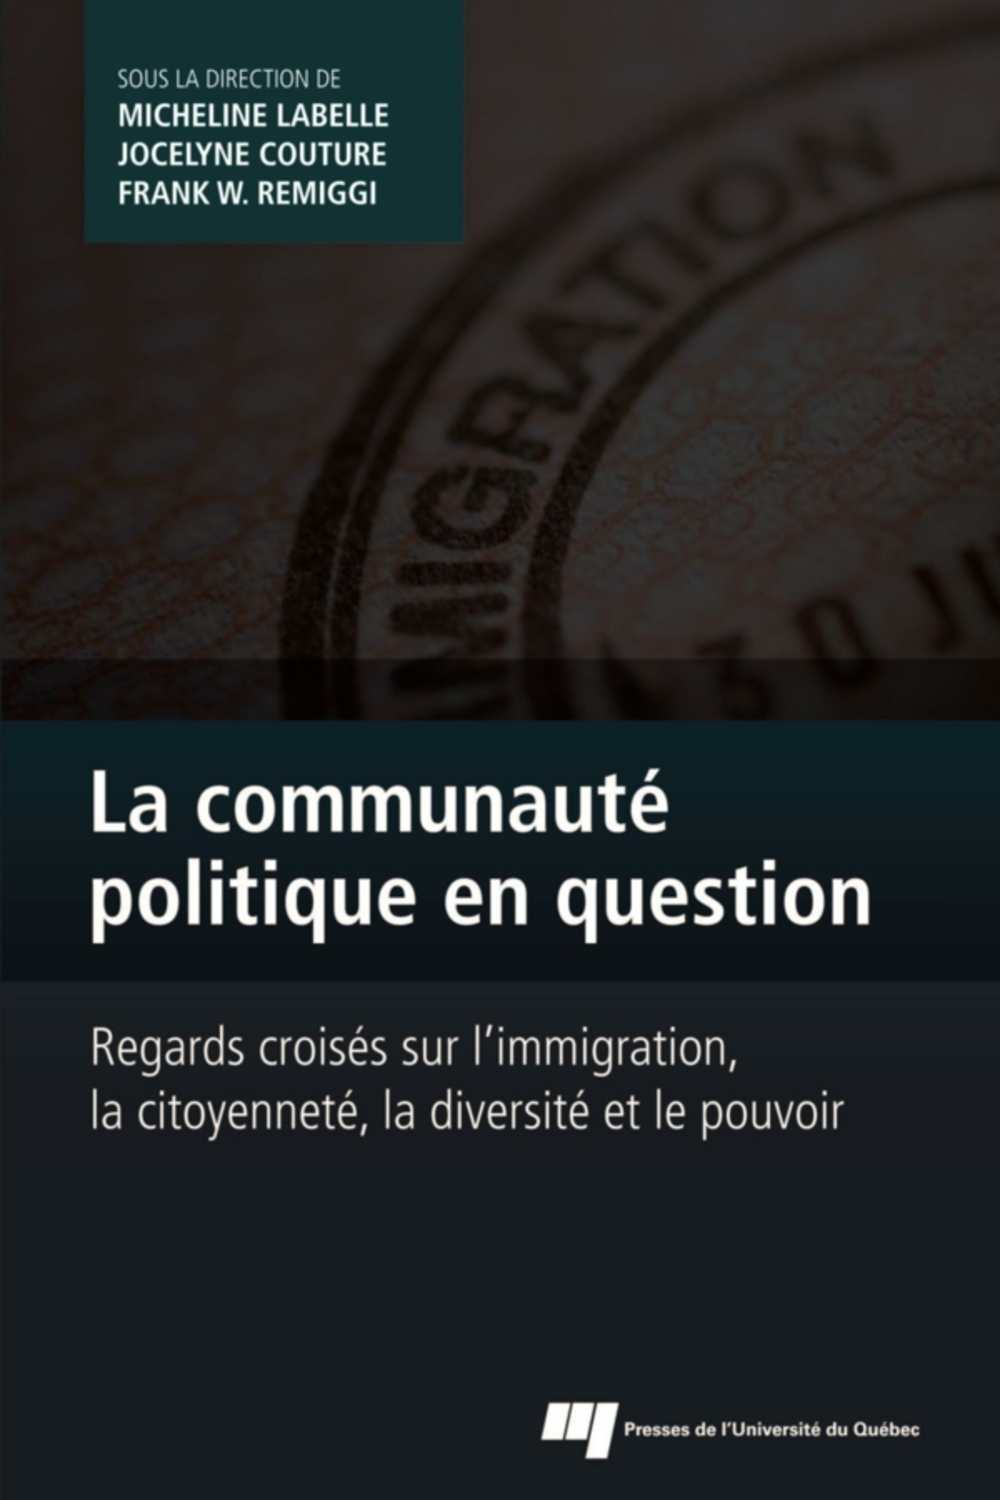 La communauté politique en question